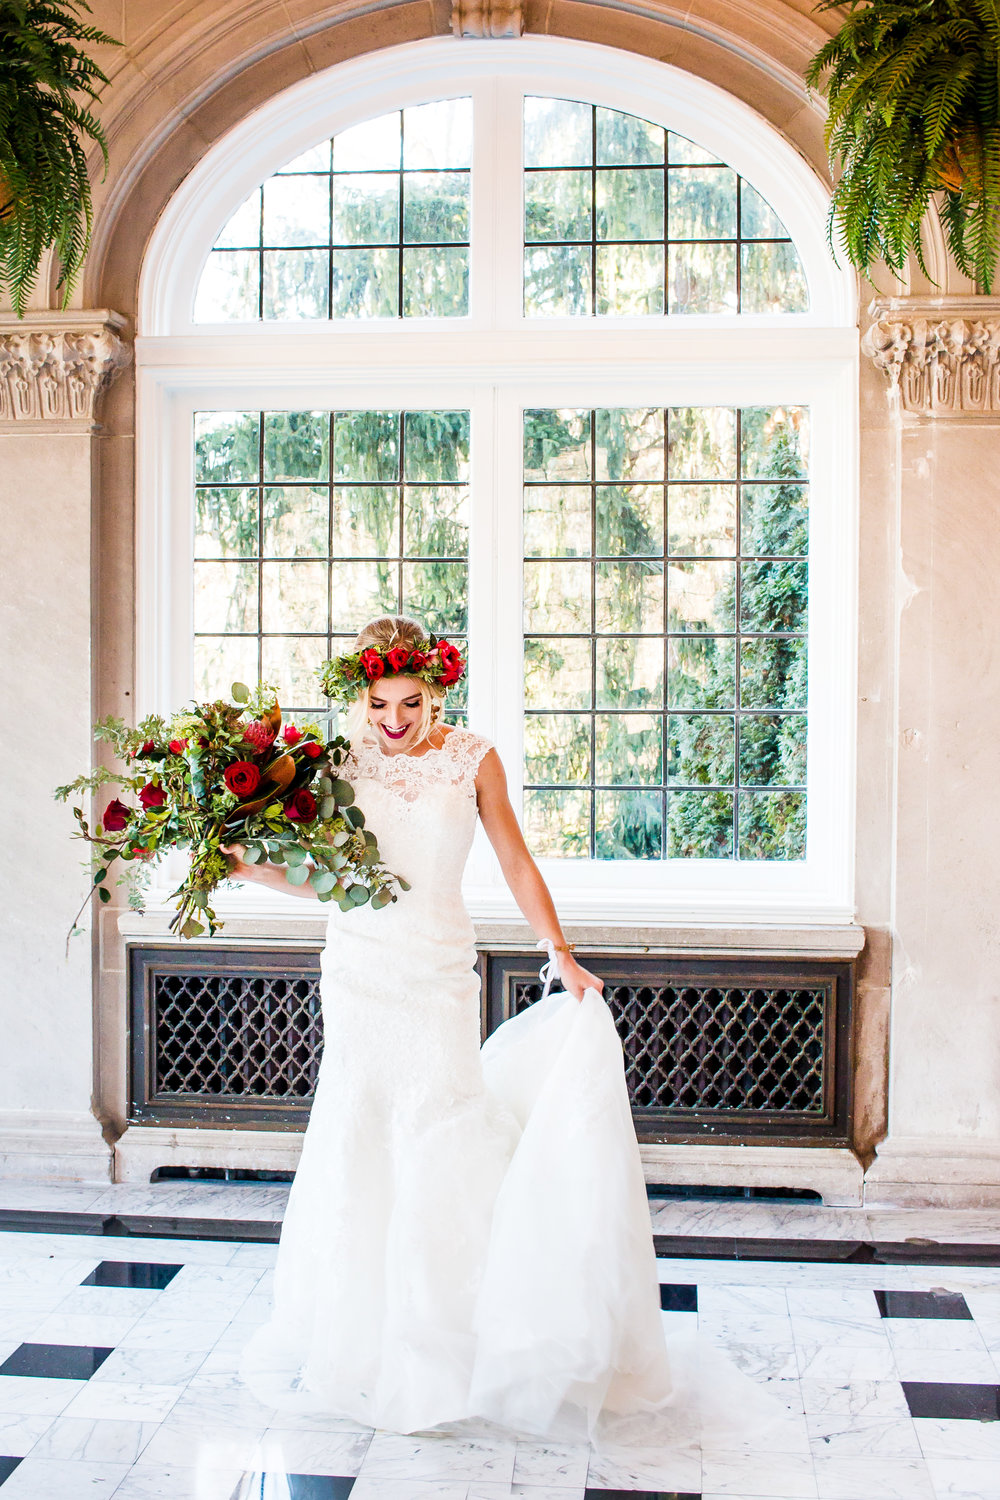 Wedding Photography at Laurel Hall in Indianapolis, Indiana